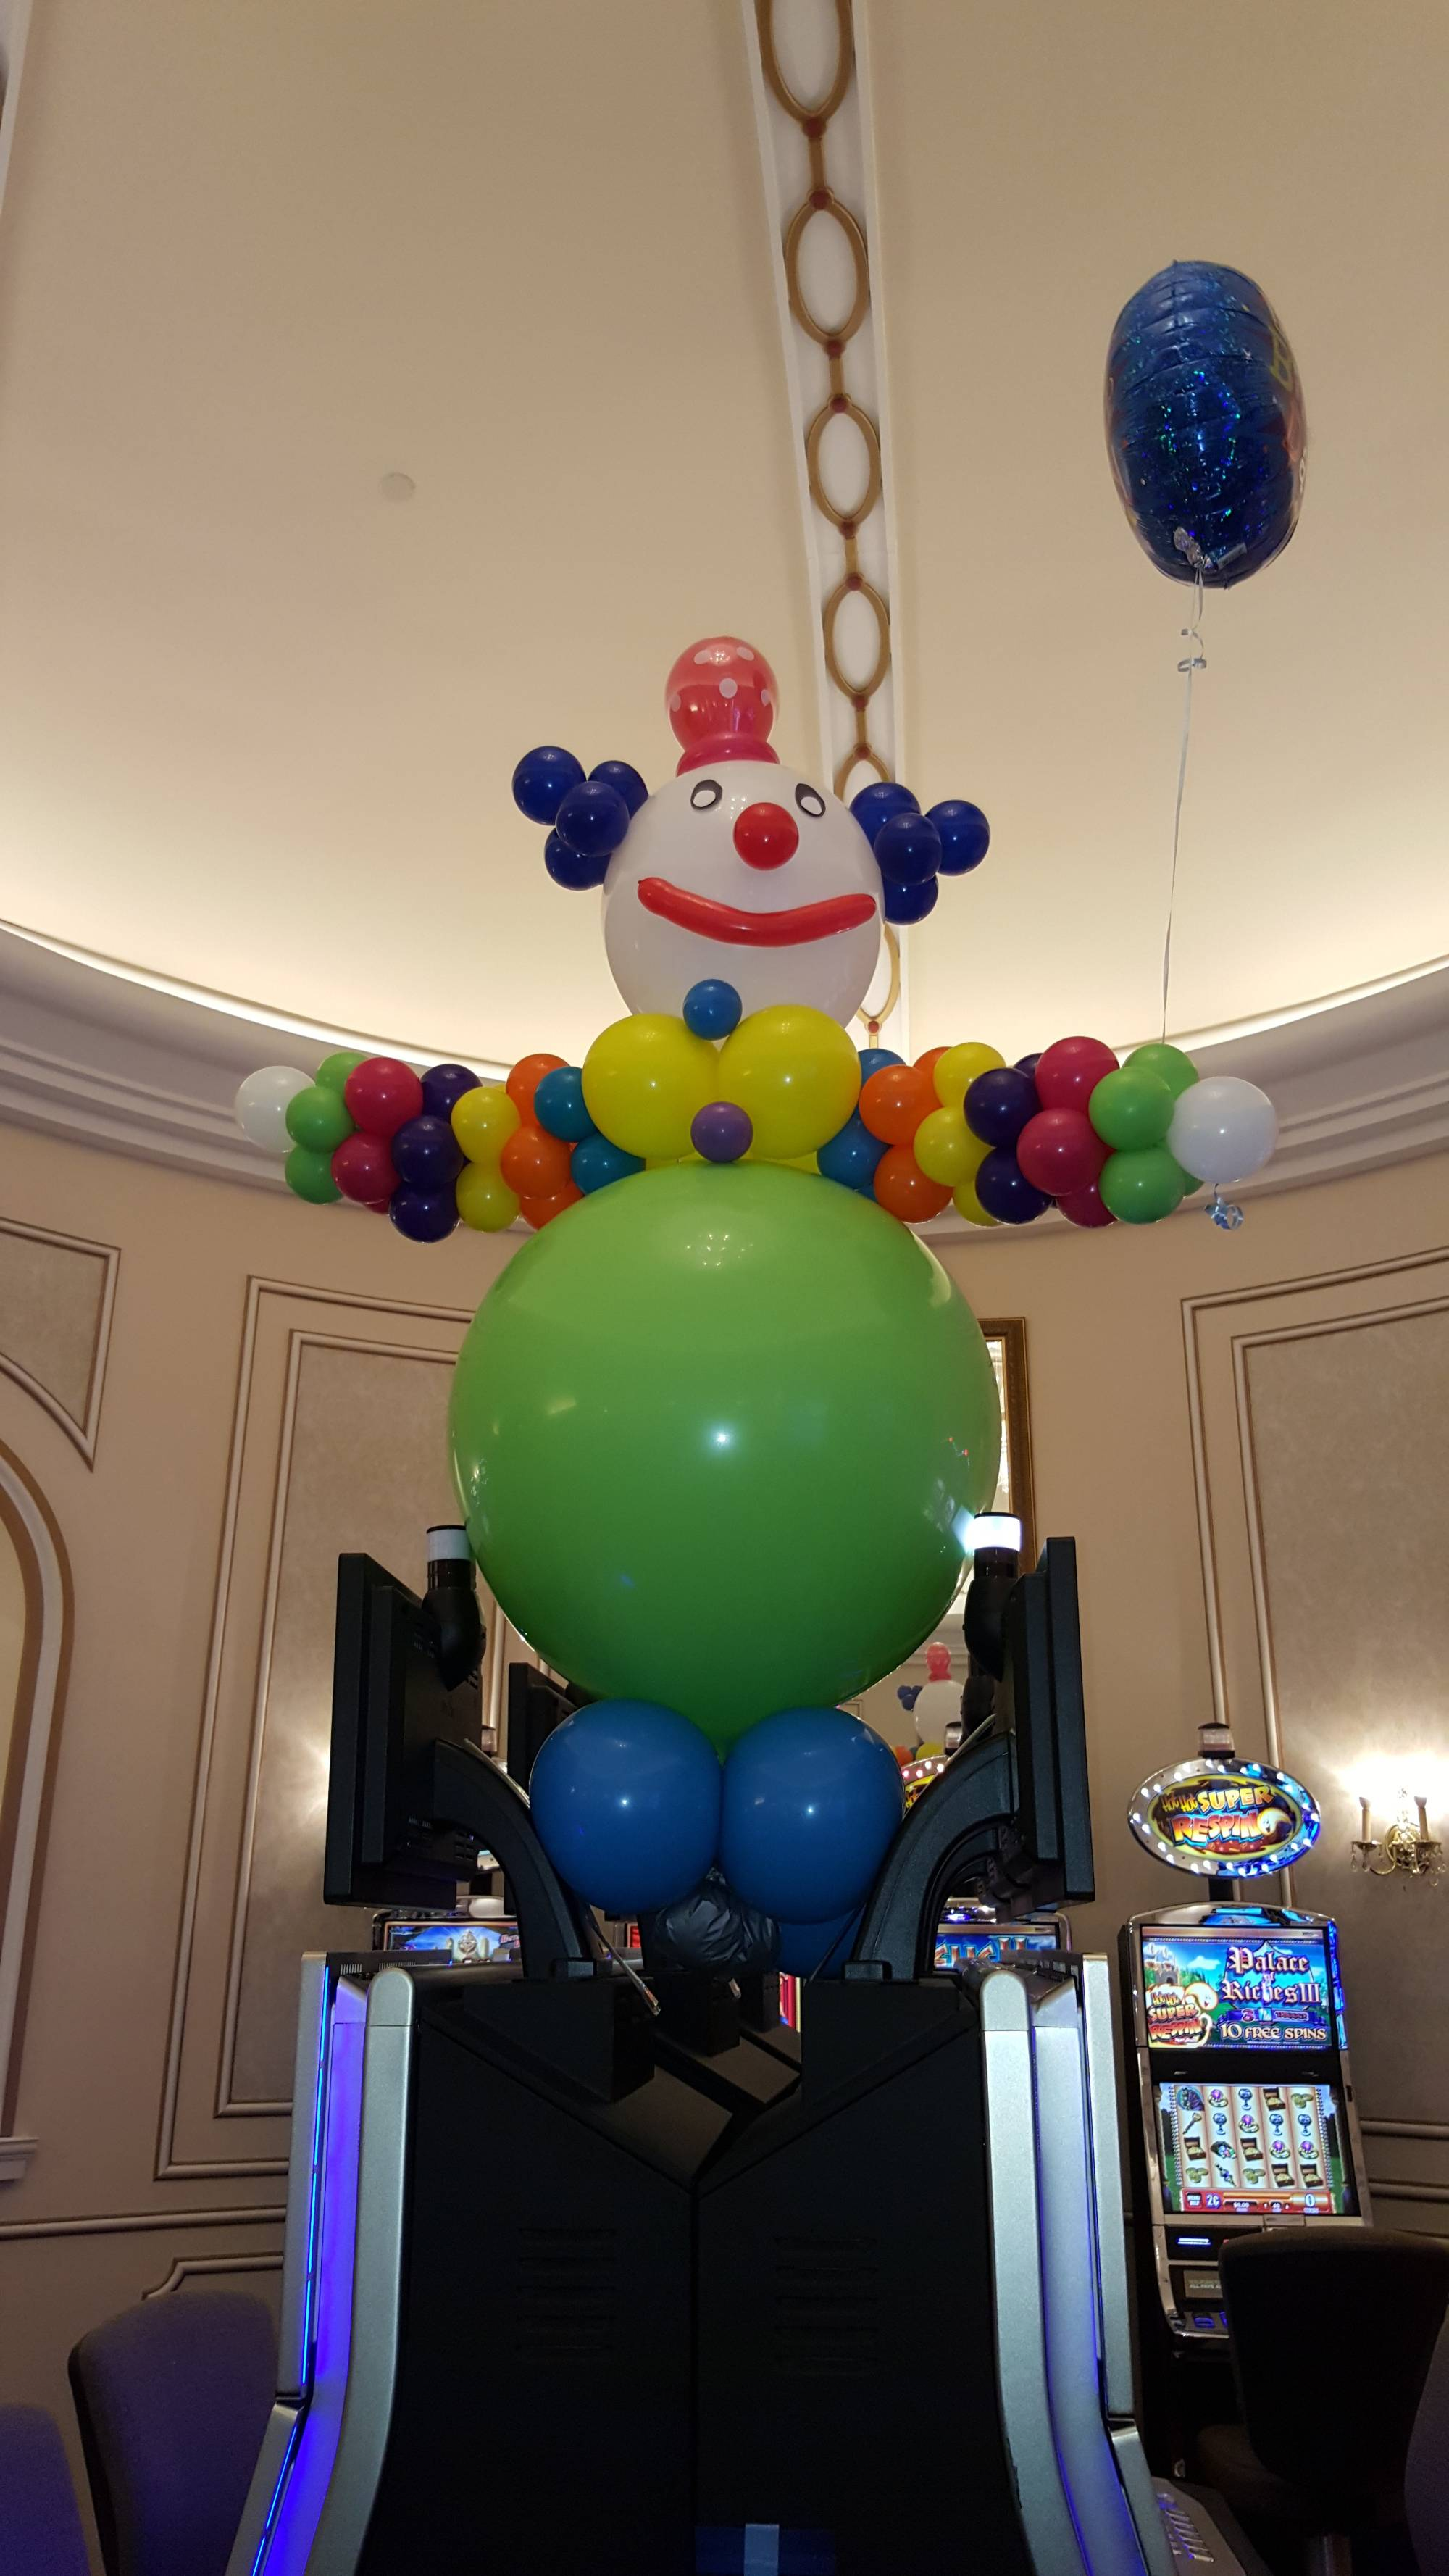 Giant Balloon Clown by Balloon Empire